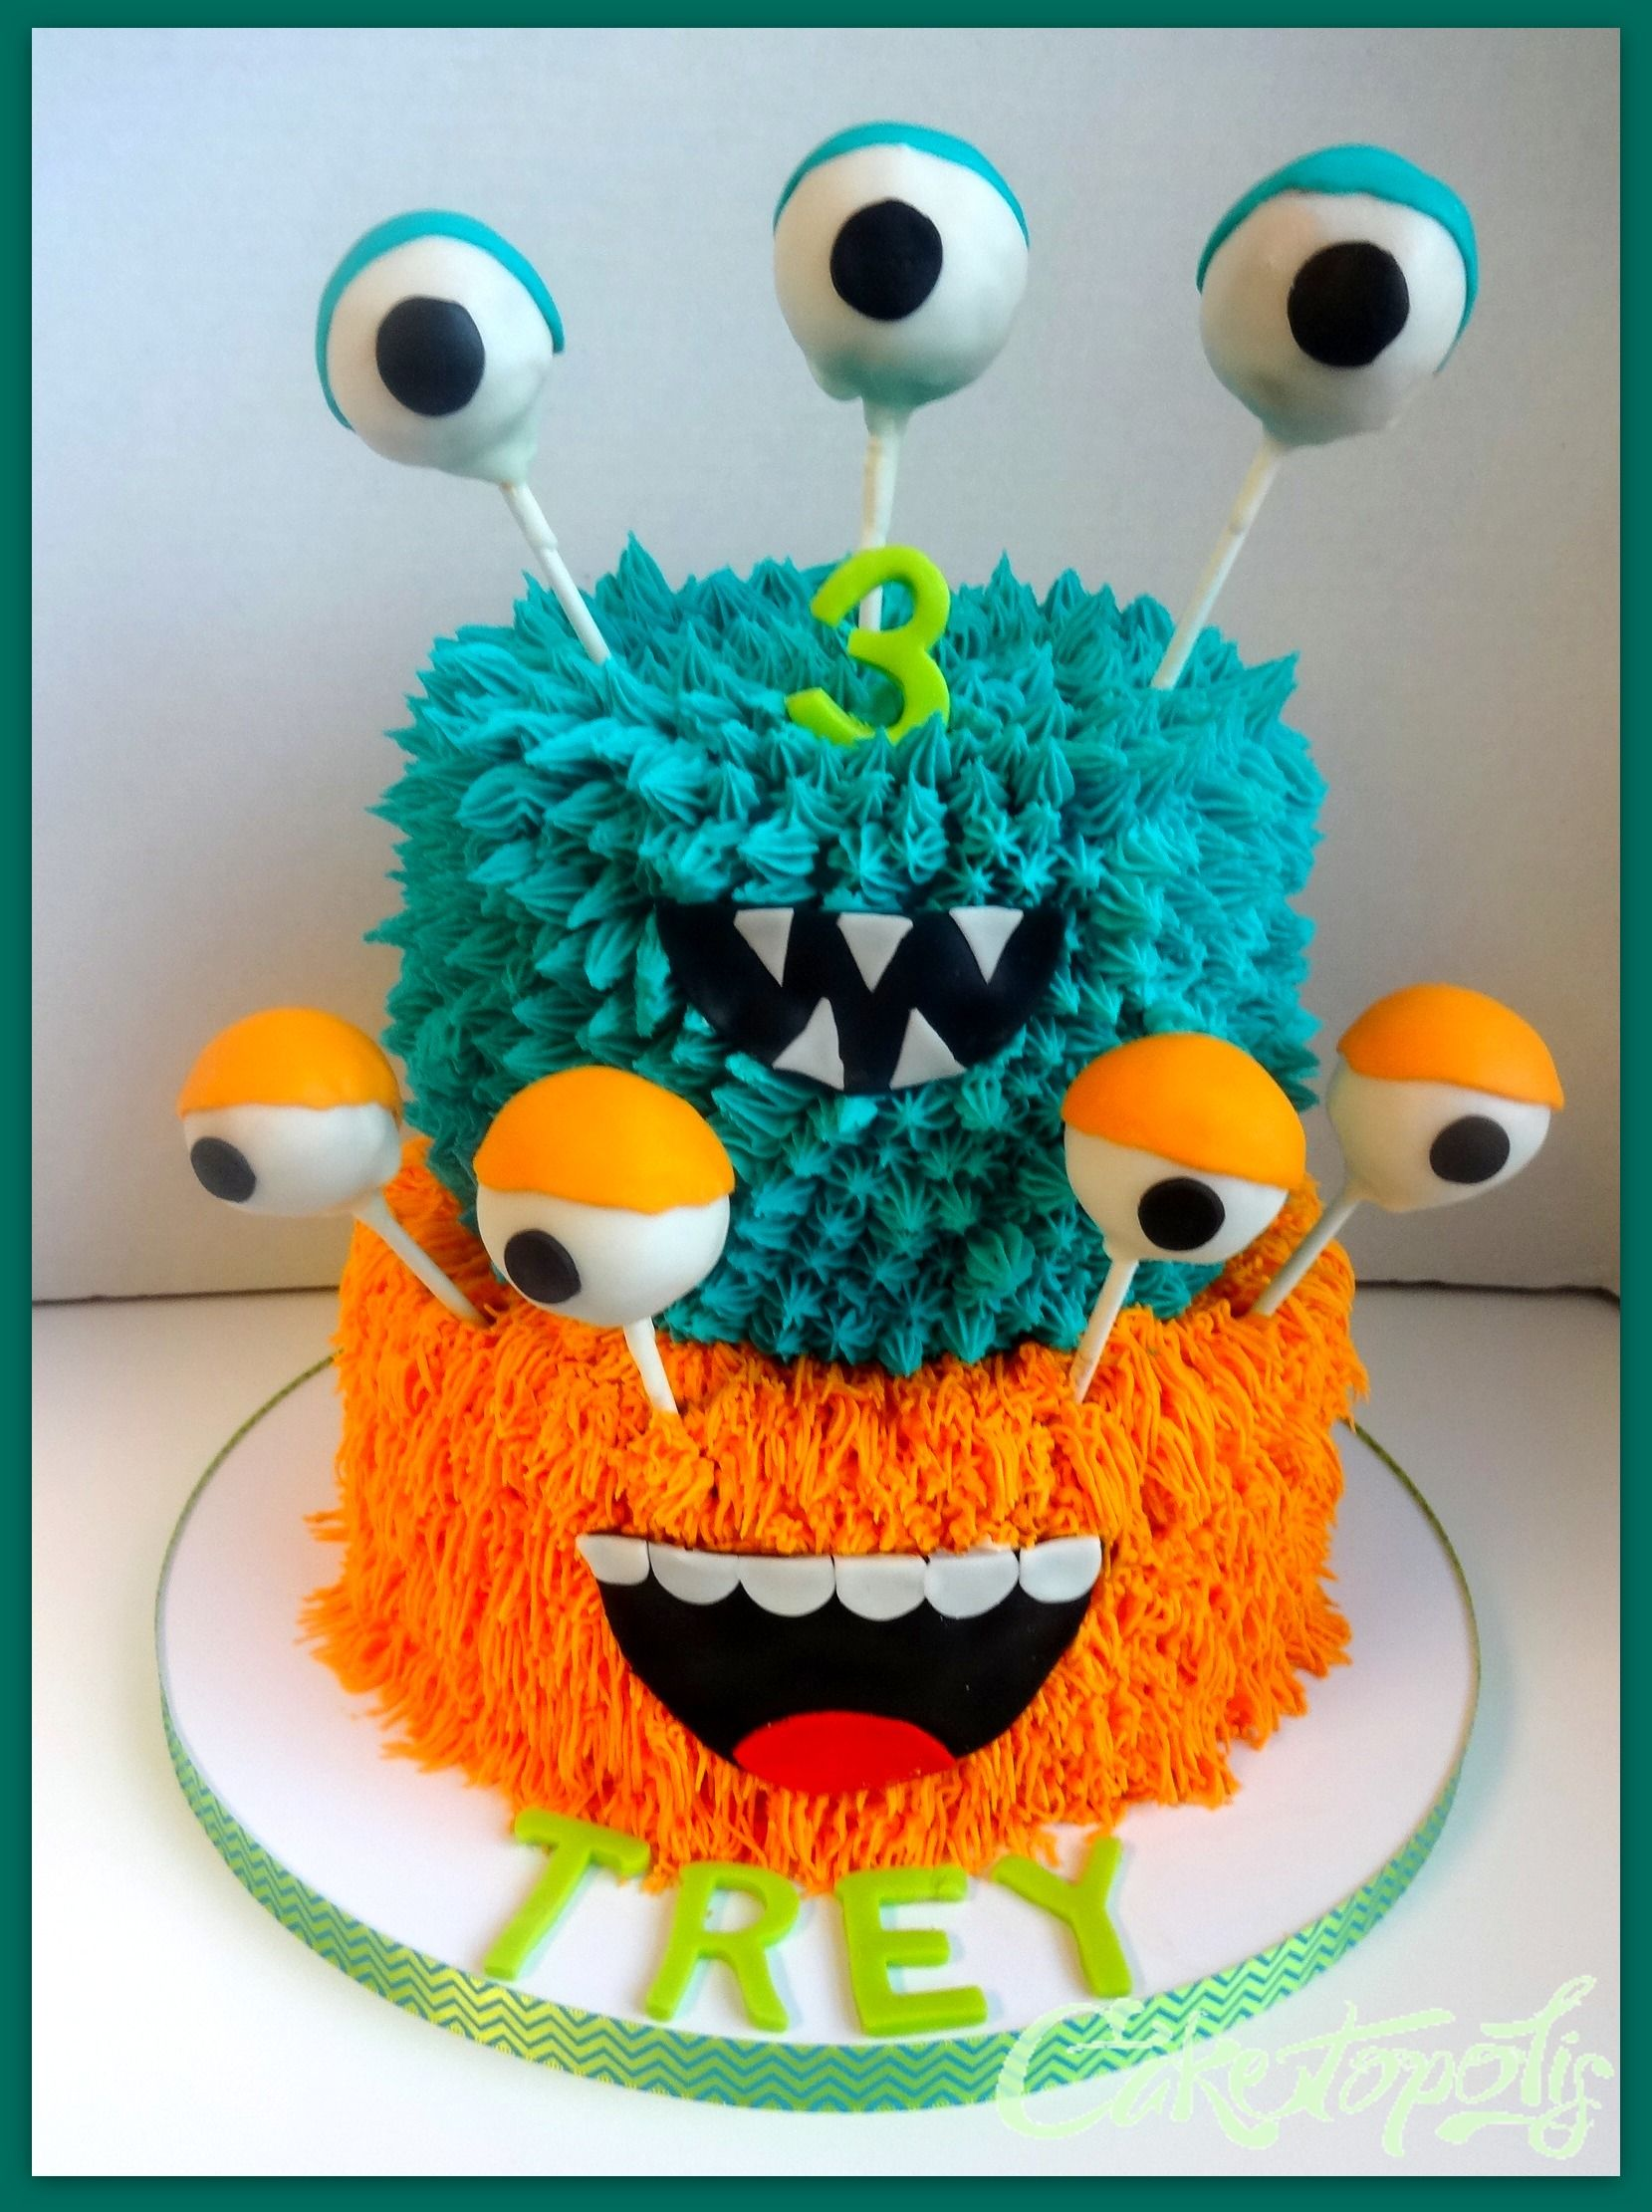 Monster Birthday Cake Buttercream monster cake with cake balls for